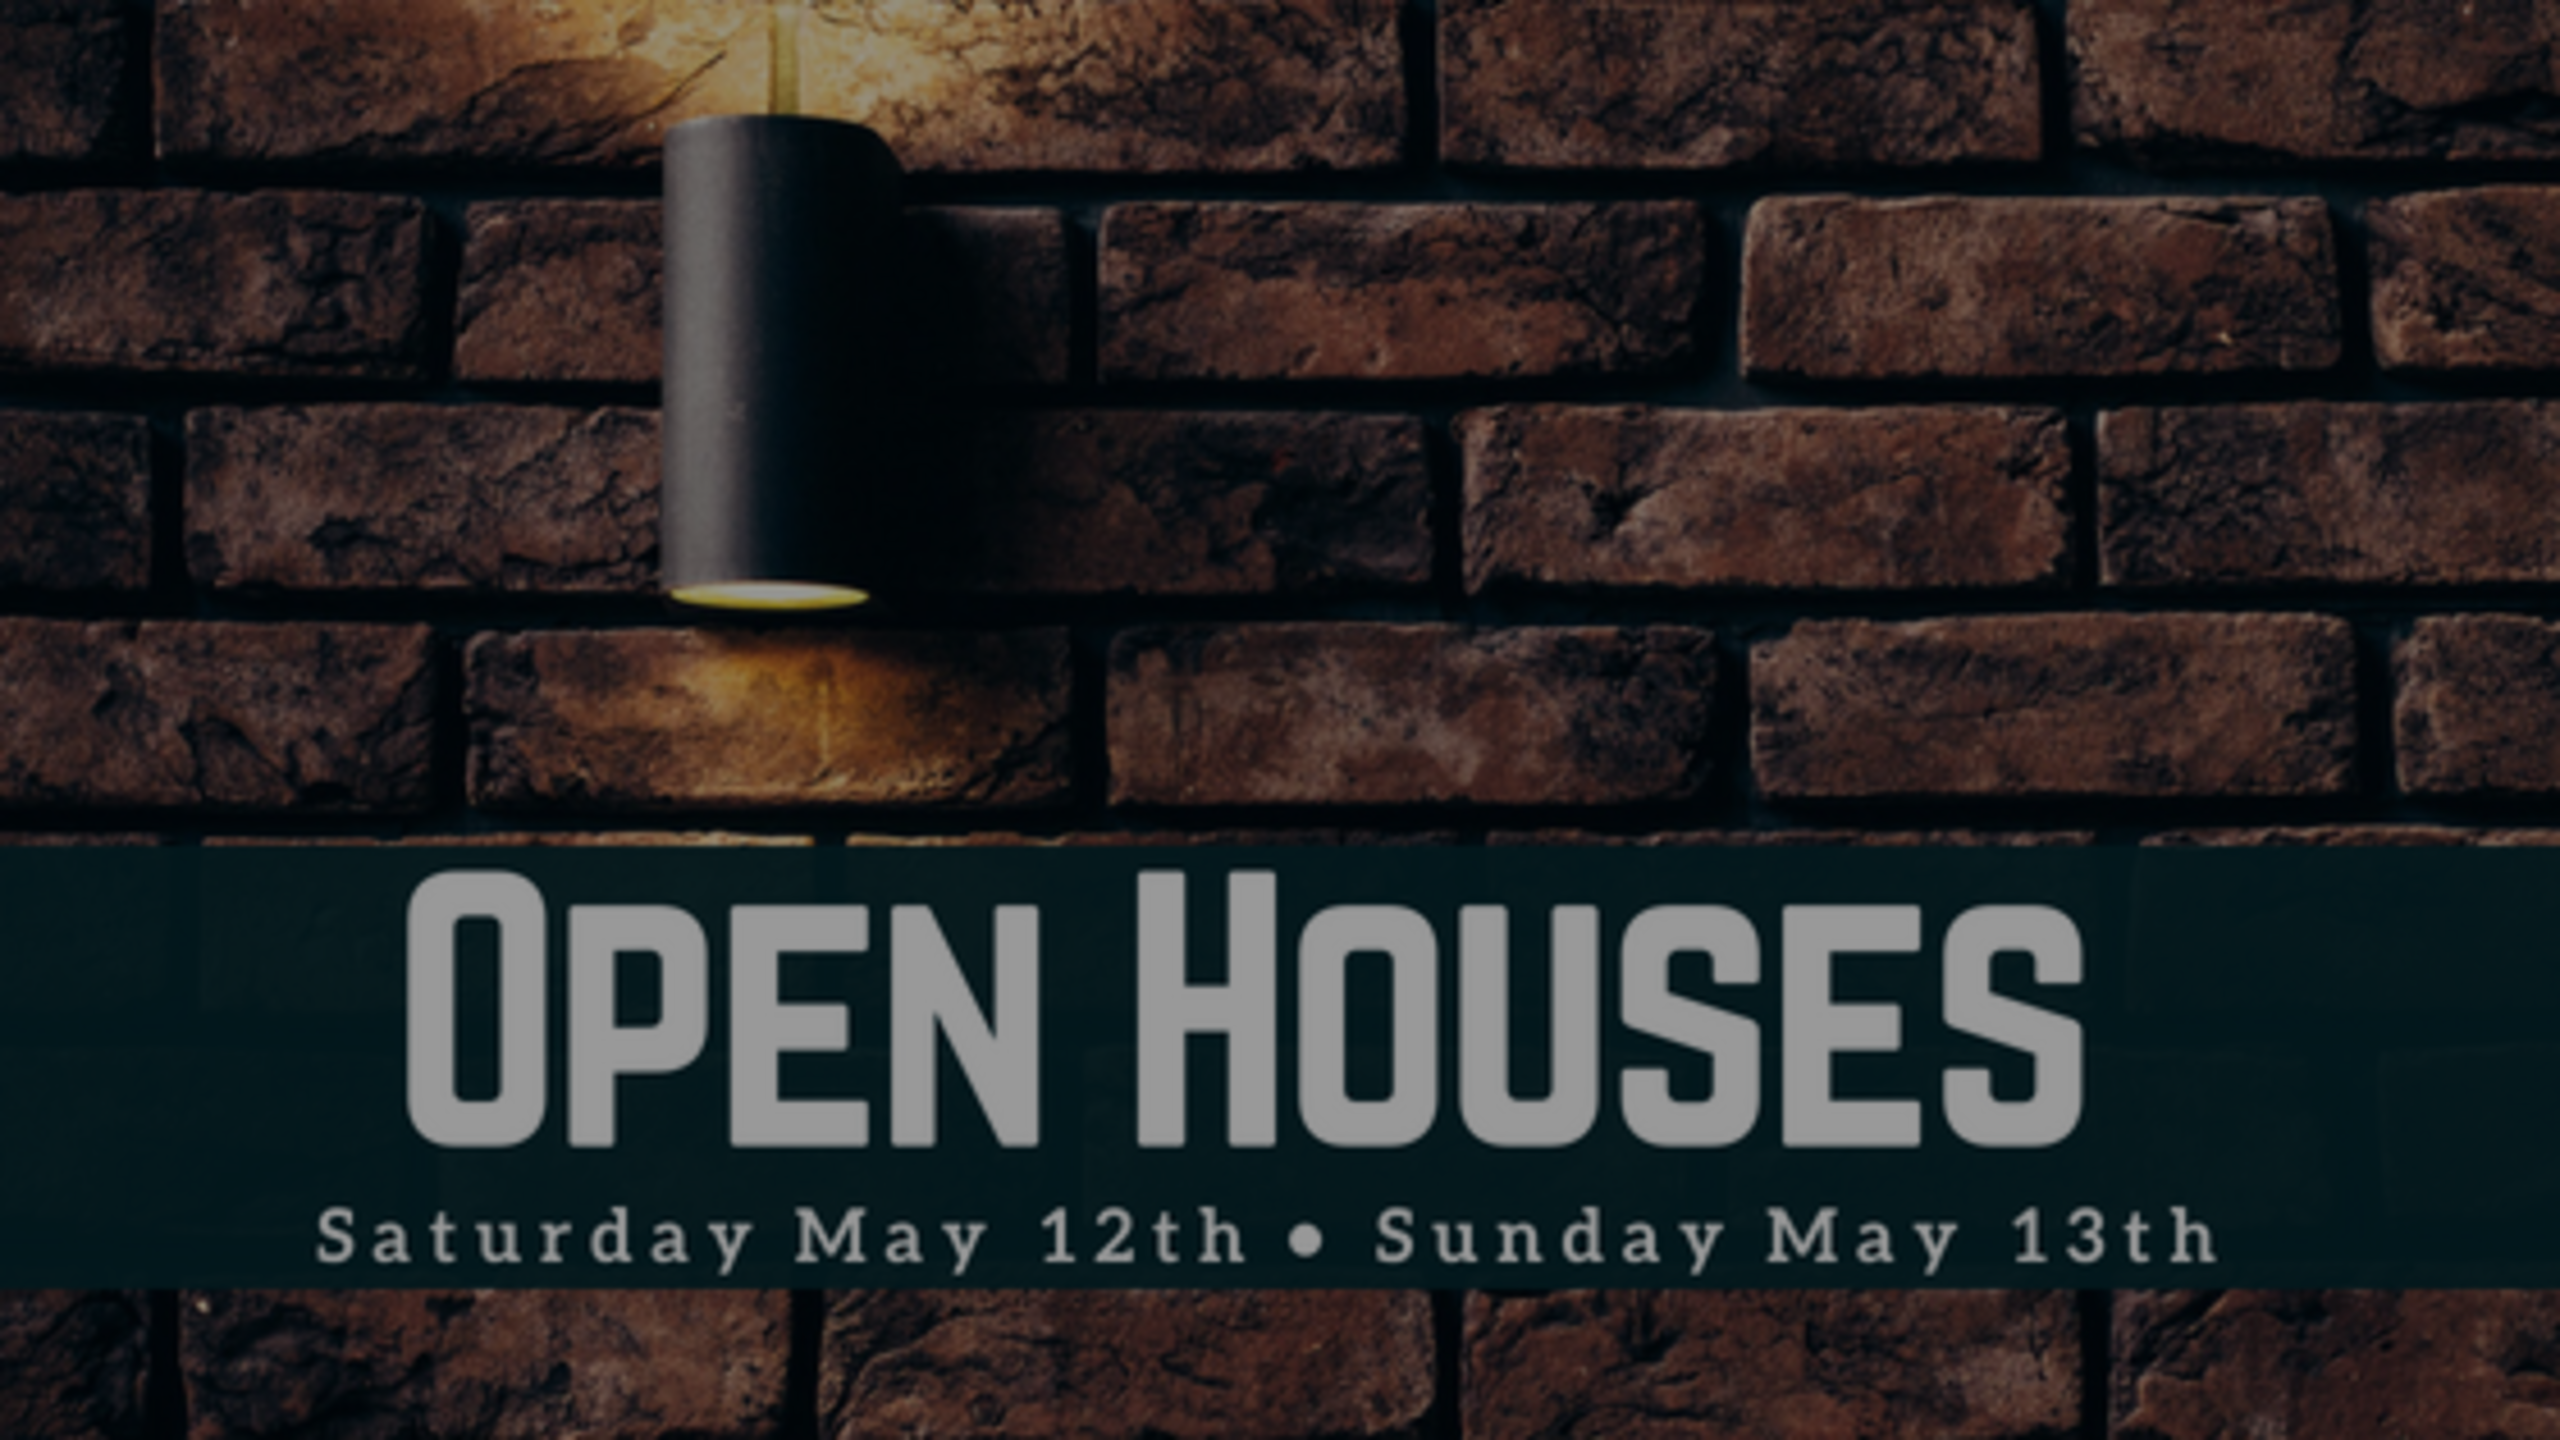 Our Open Houses: Weekend of 5/12 + 5/13